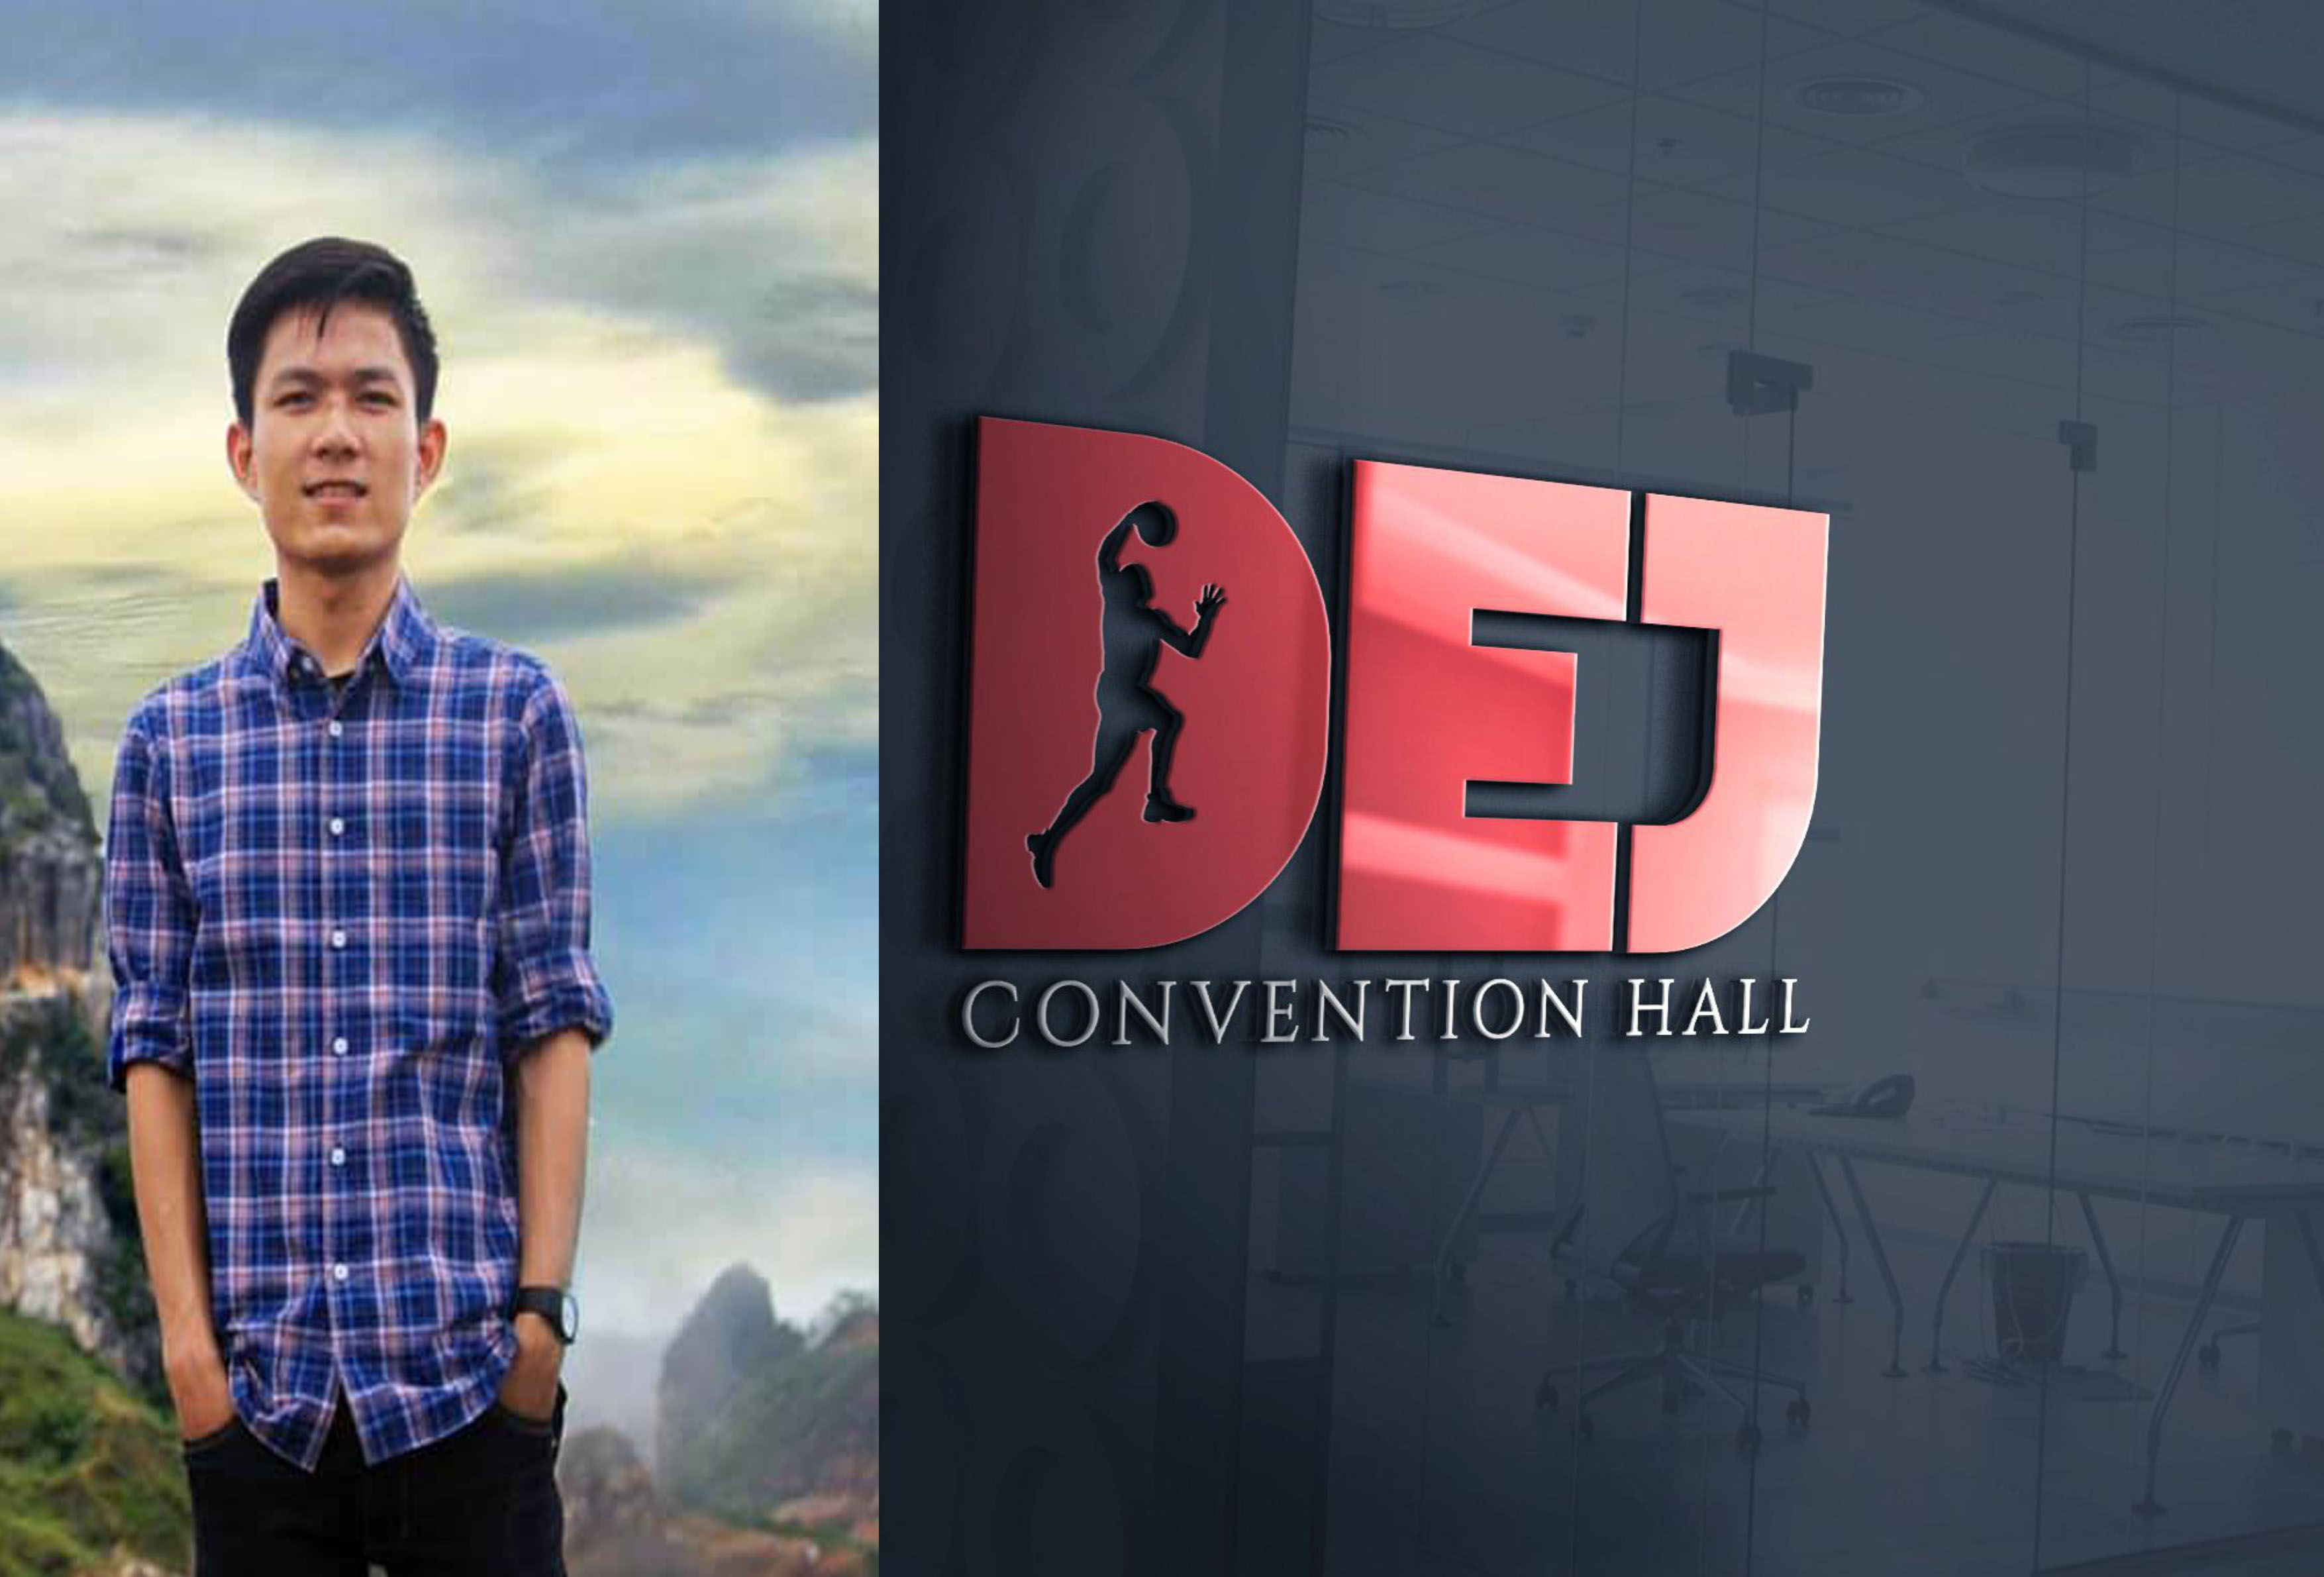 Photo of Juara Sayembara Logo Dej Convention Hall, Rahmad Ashar: Pisau Jika Tak Diasah Akan Tumpul